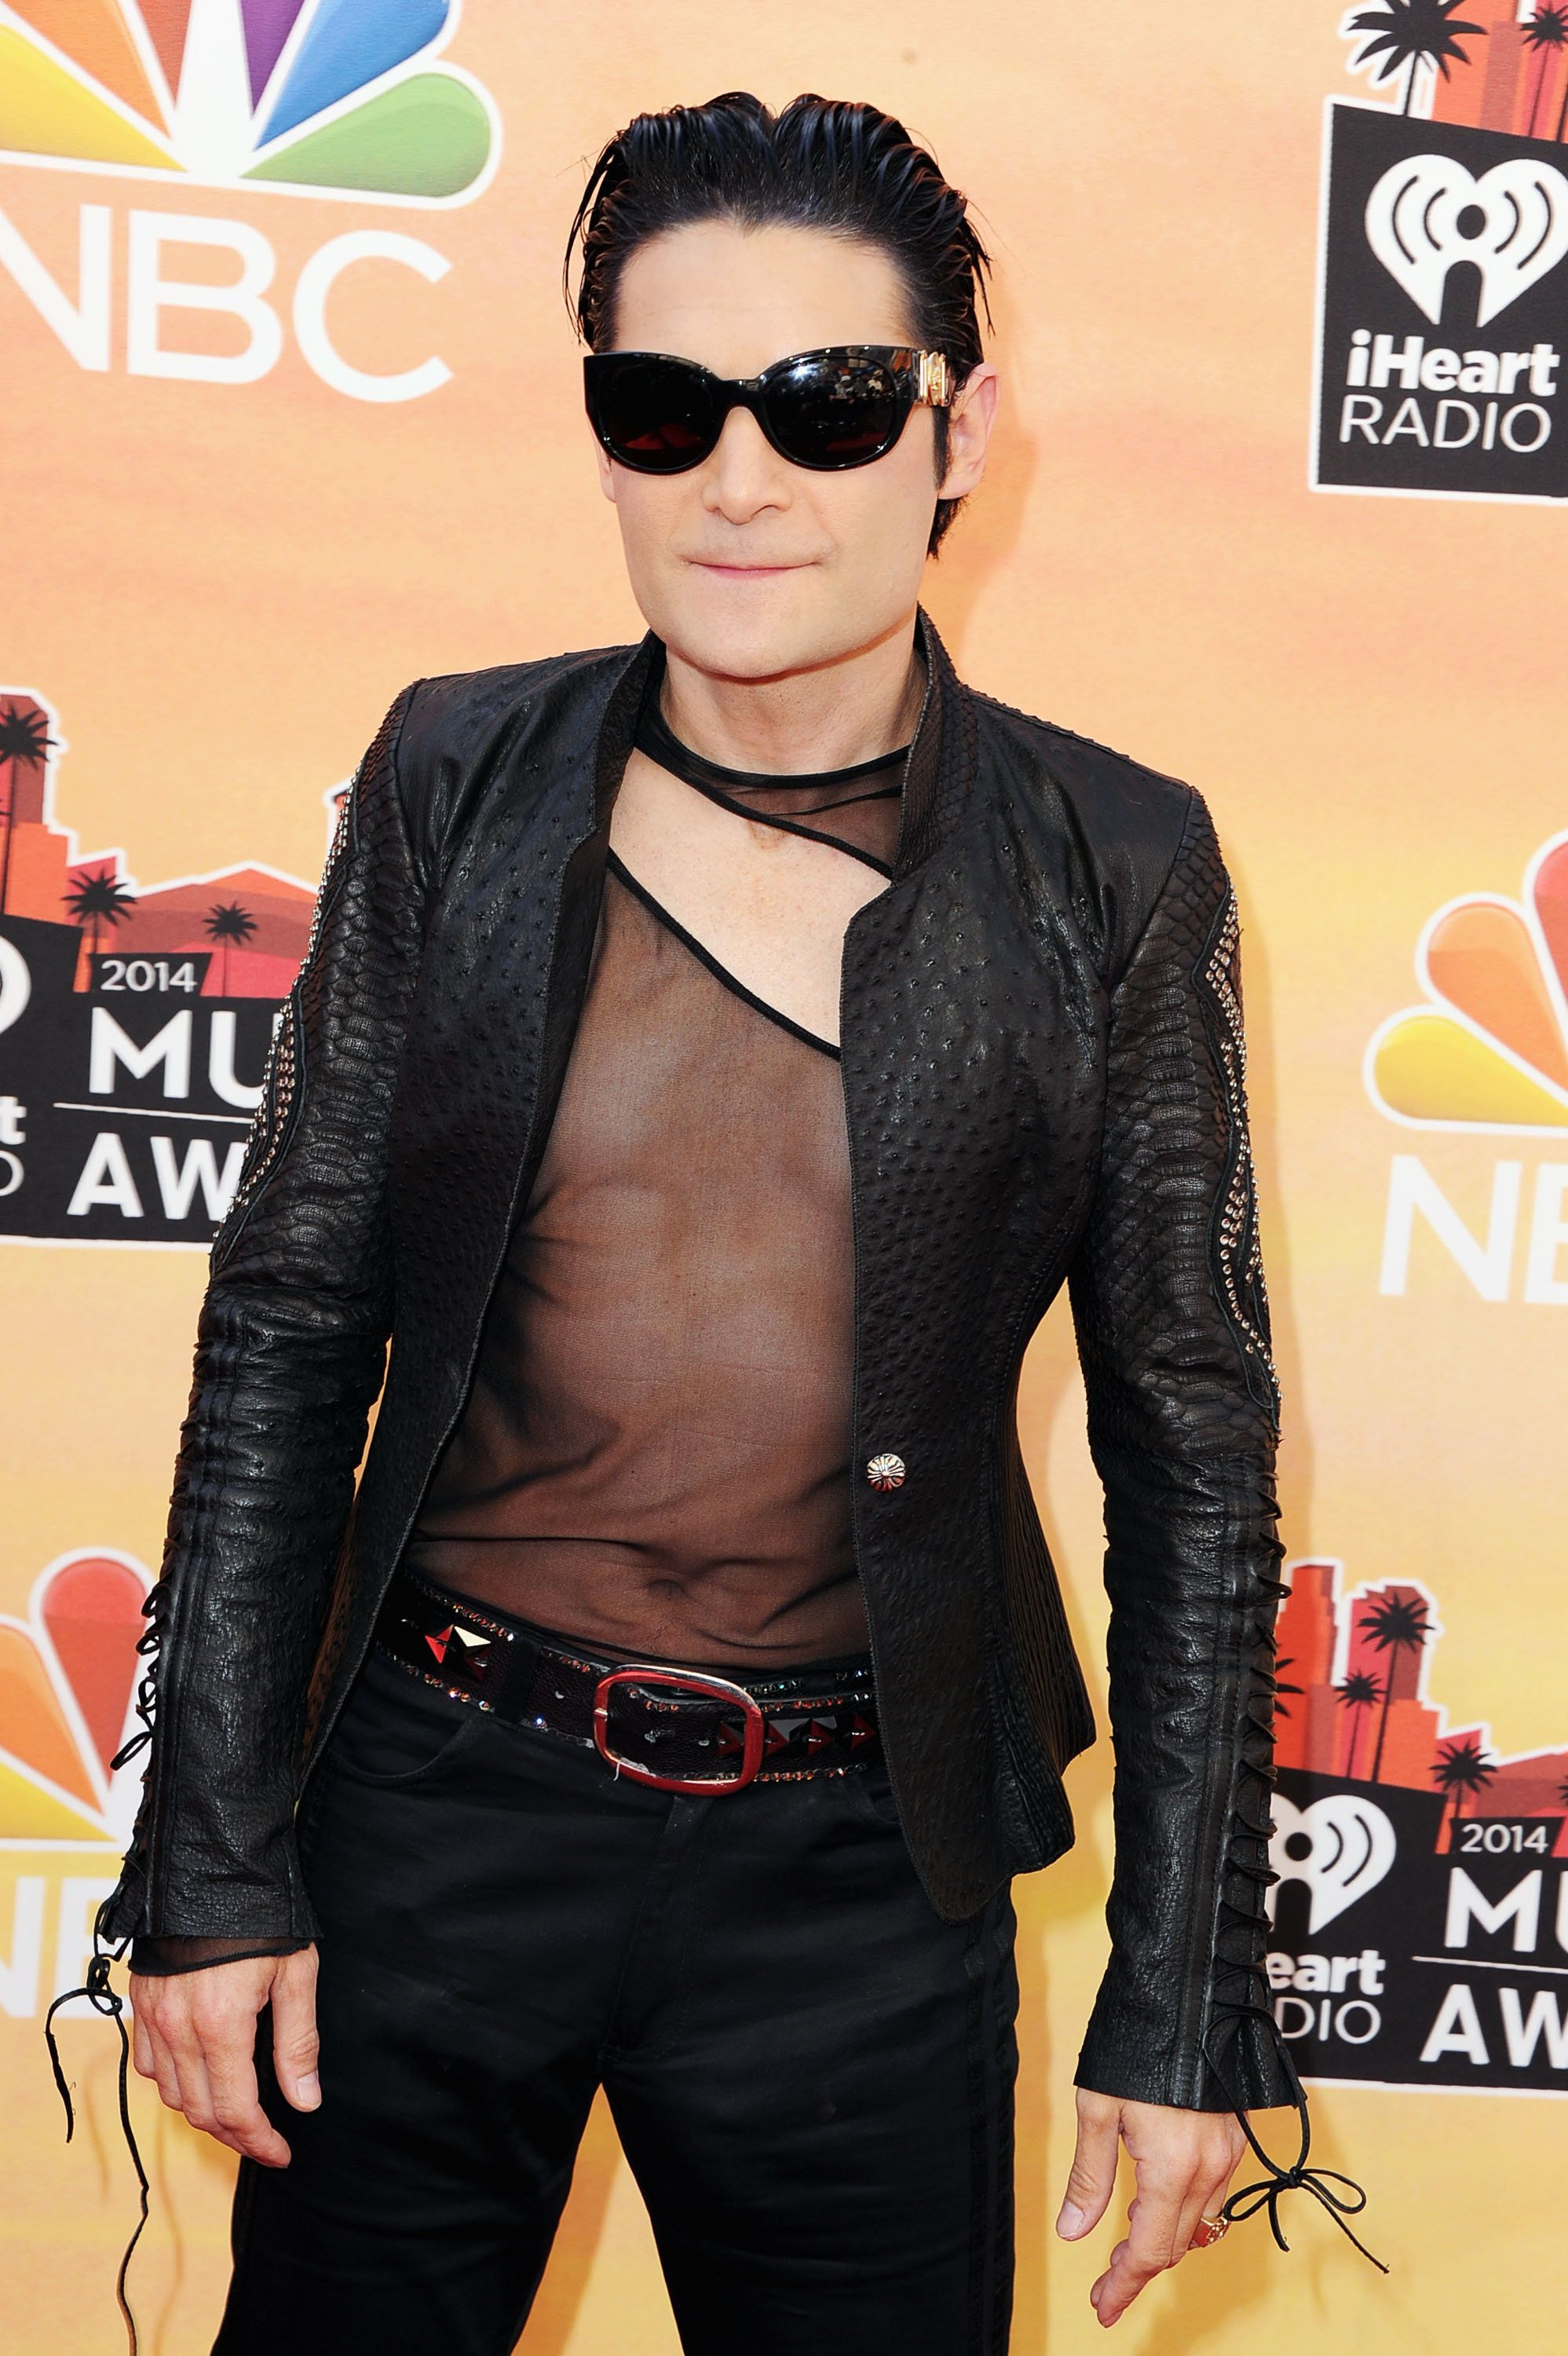 LOS ANGELES, CA - MAY 01:  Actor Corey Feldman attends the 2014 iHeartRadio Music Awards held at The Shrine Auditorium on May 1, 2014 in Los Angeles, California.  (Photo by Steve Granitz/WireImage)